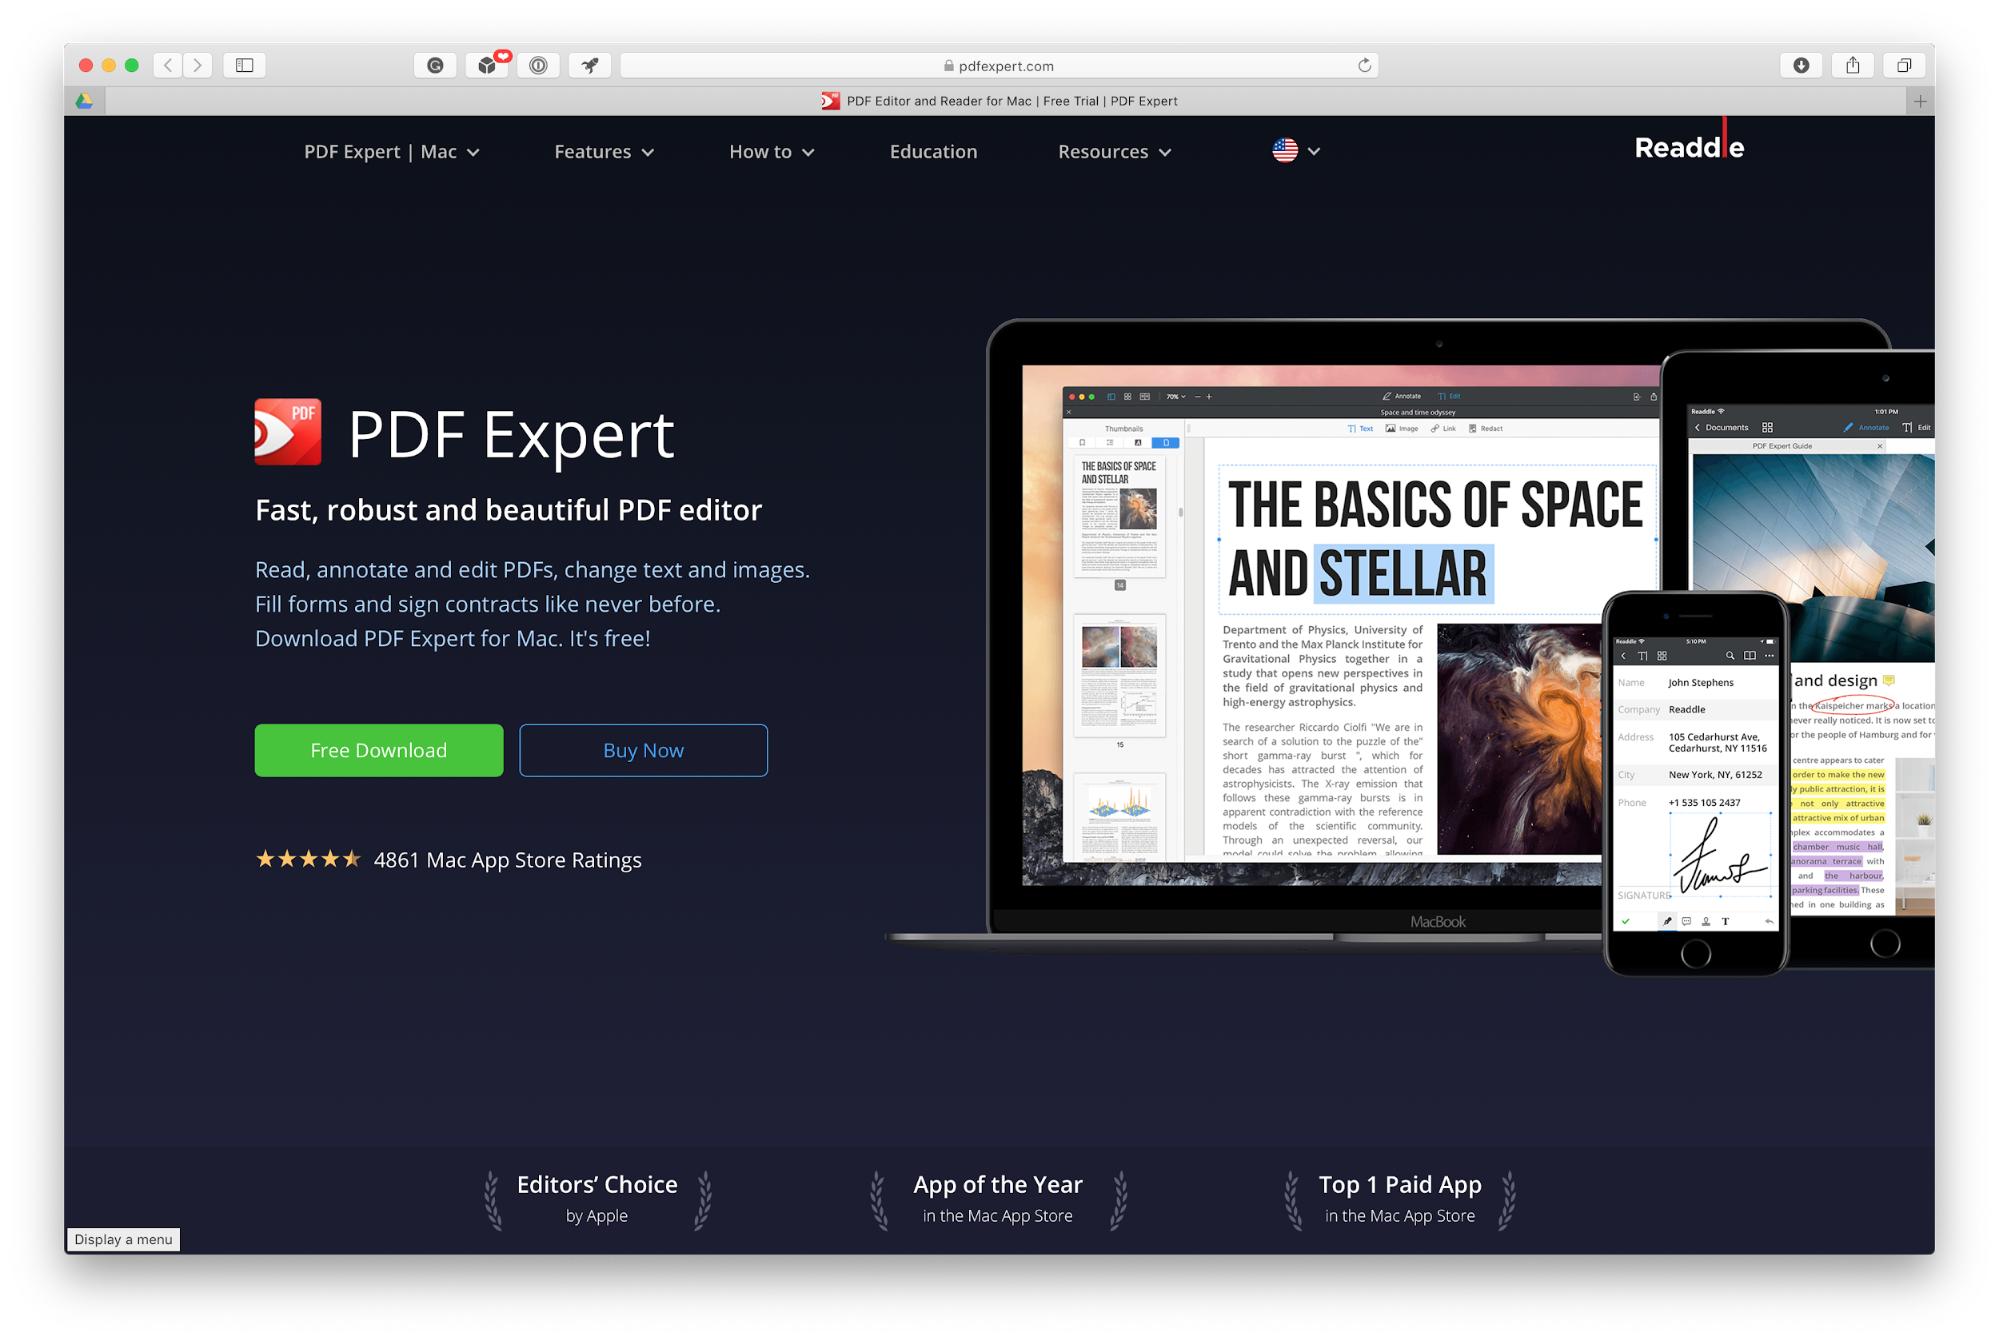 PDF Expert home page